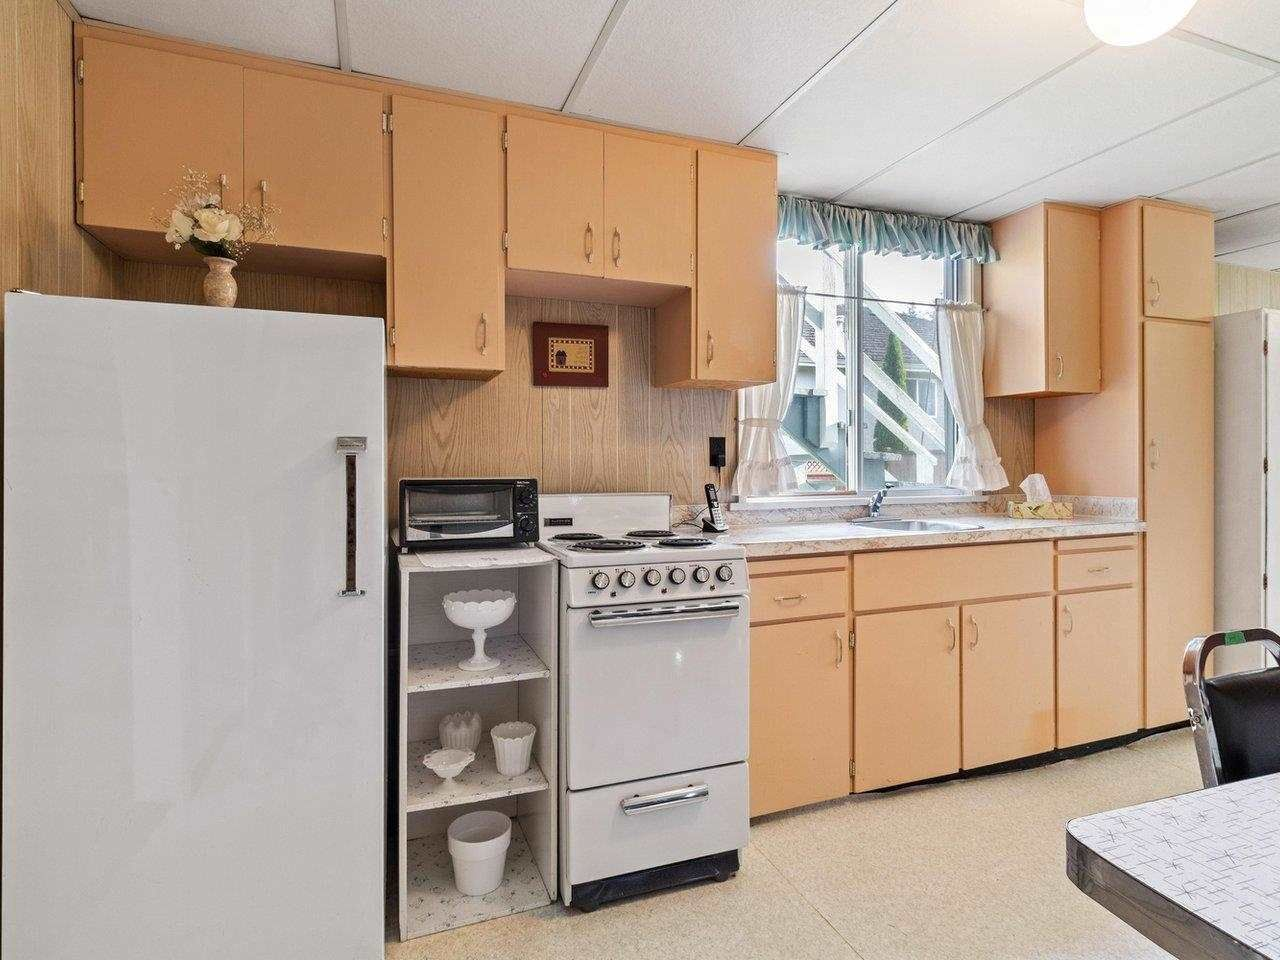 Photo 23: Photos: 1510 CHARLAND Avenue in Coquitlam: Central Coquitlam House for sale : MLS®# R2577681